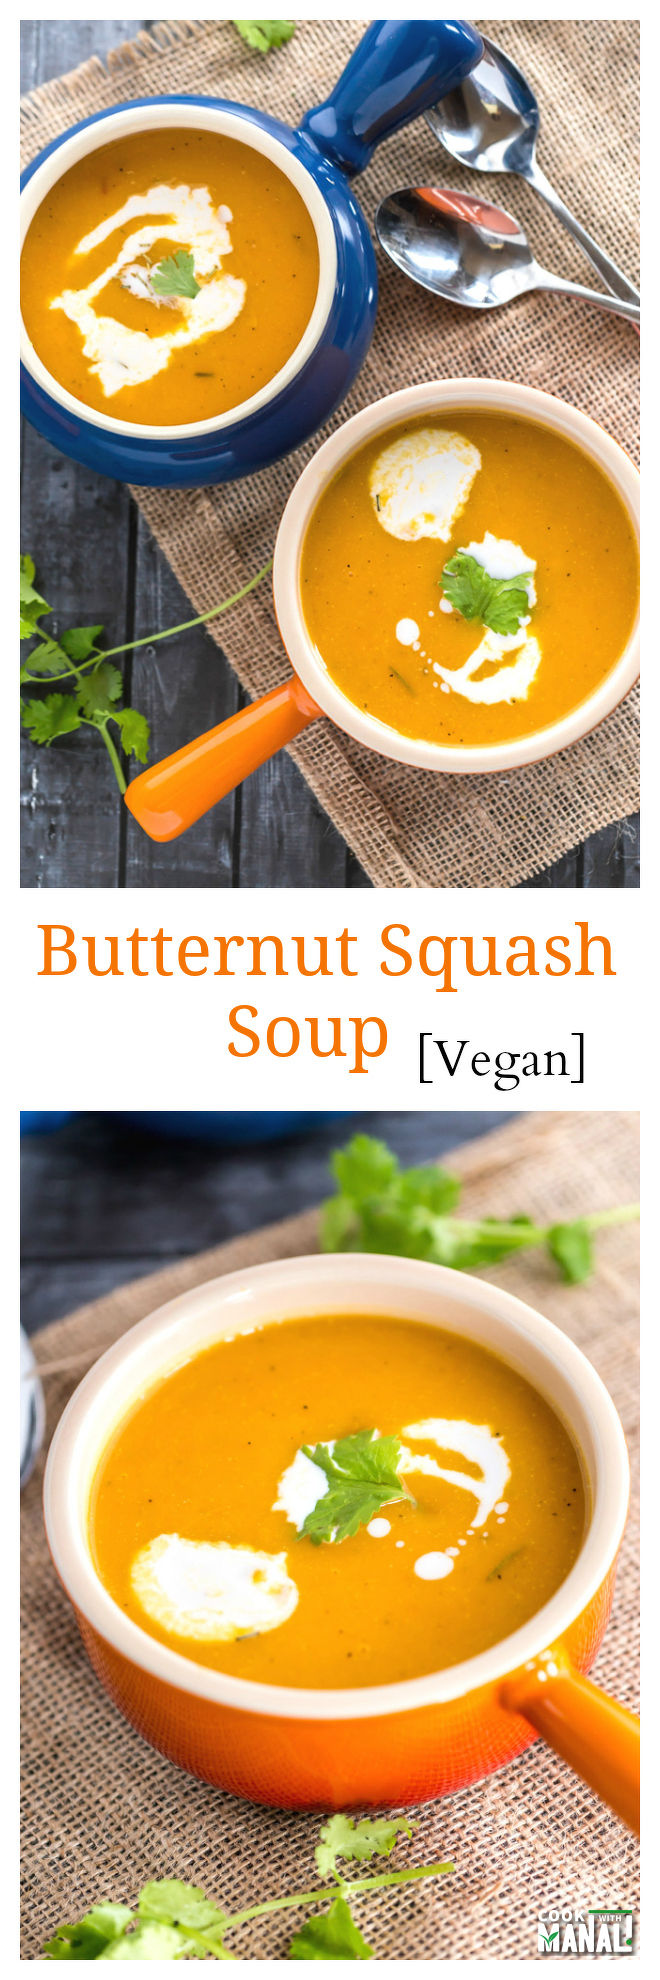 Vegan Butternut Squash Soup Collage